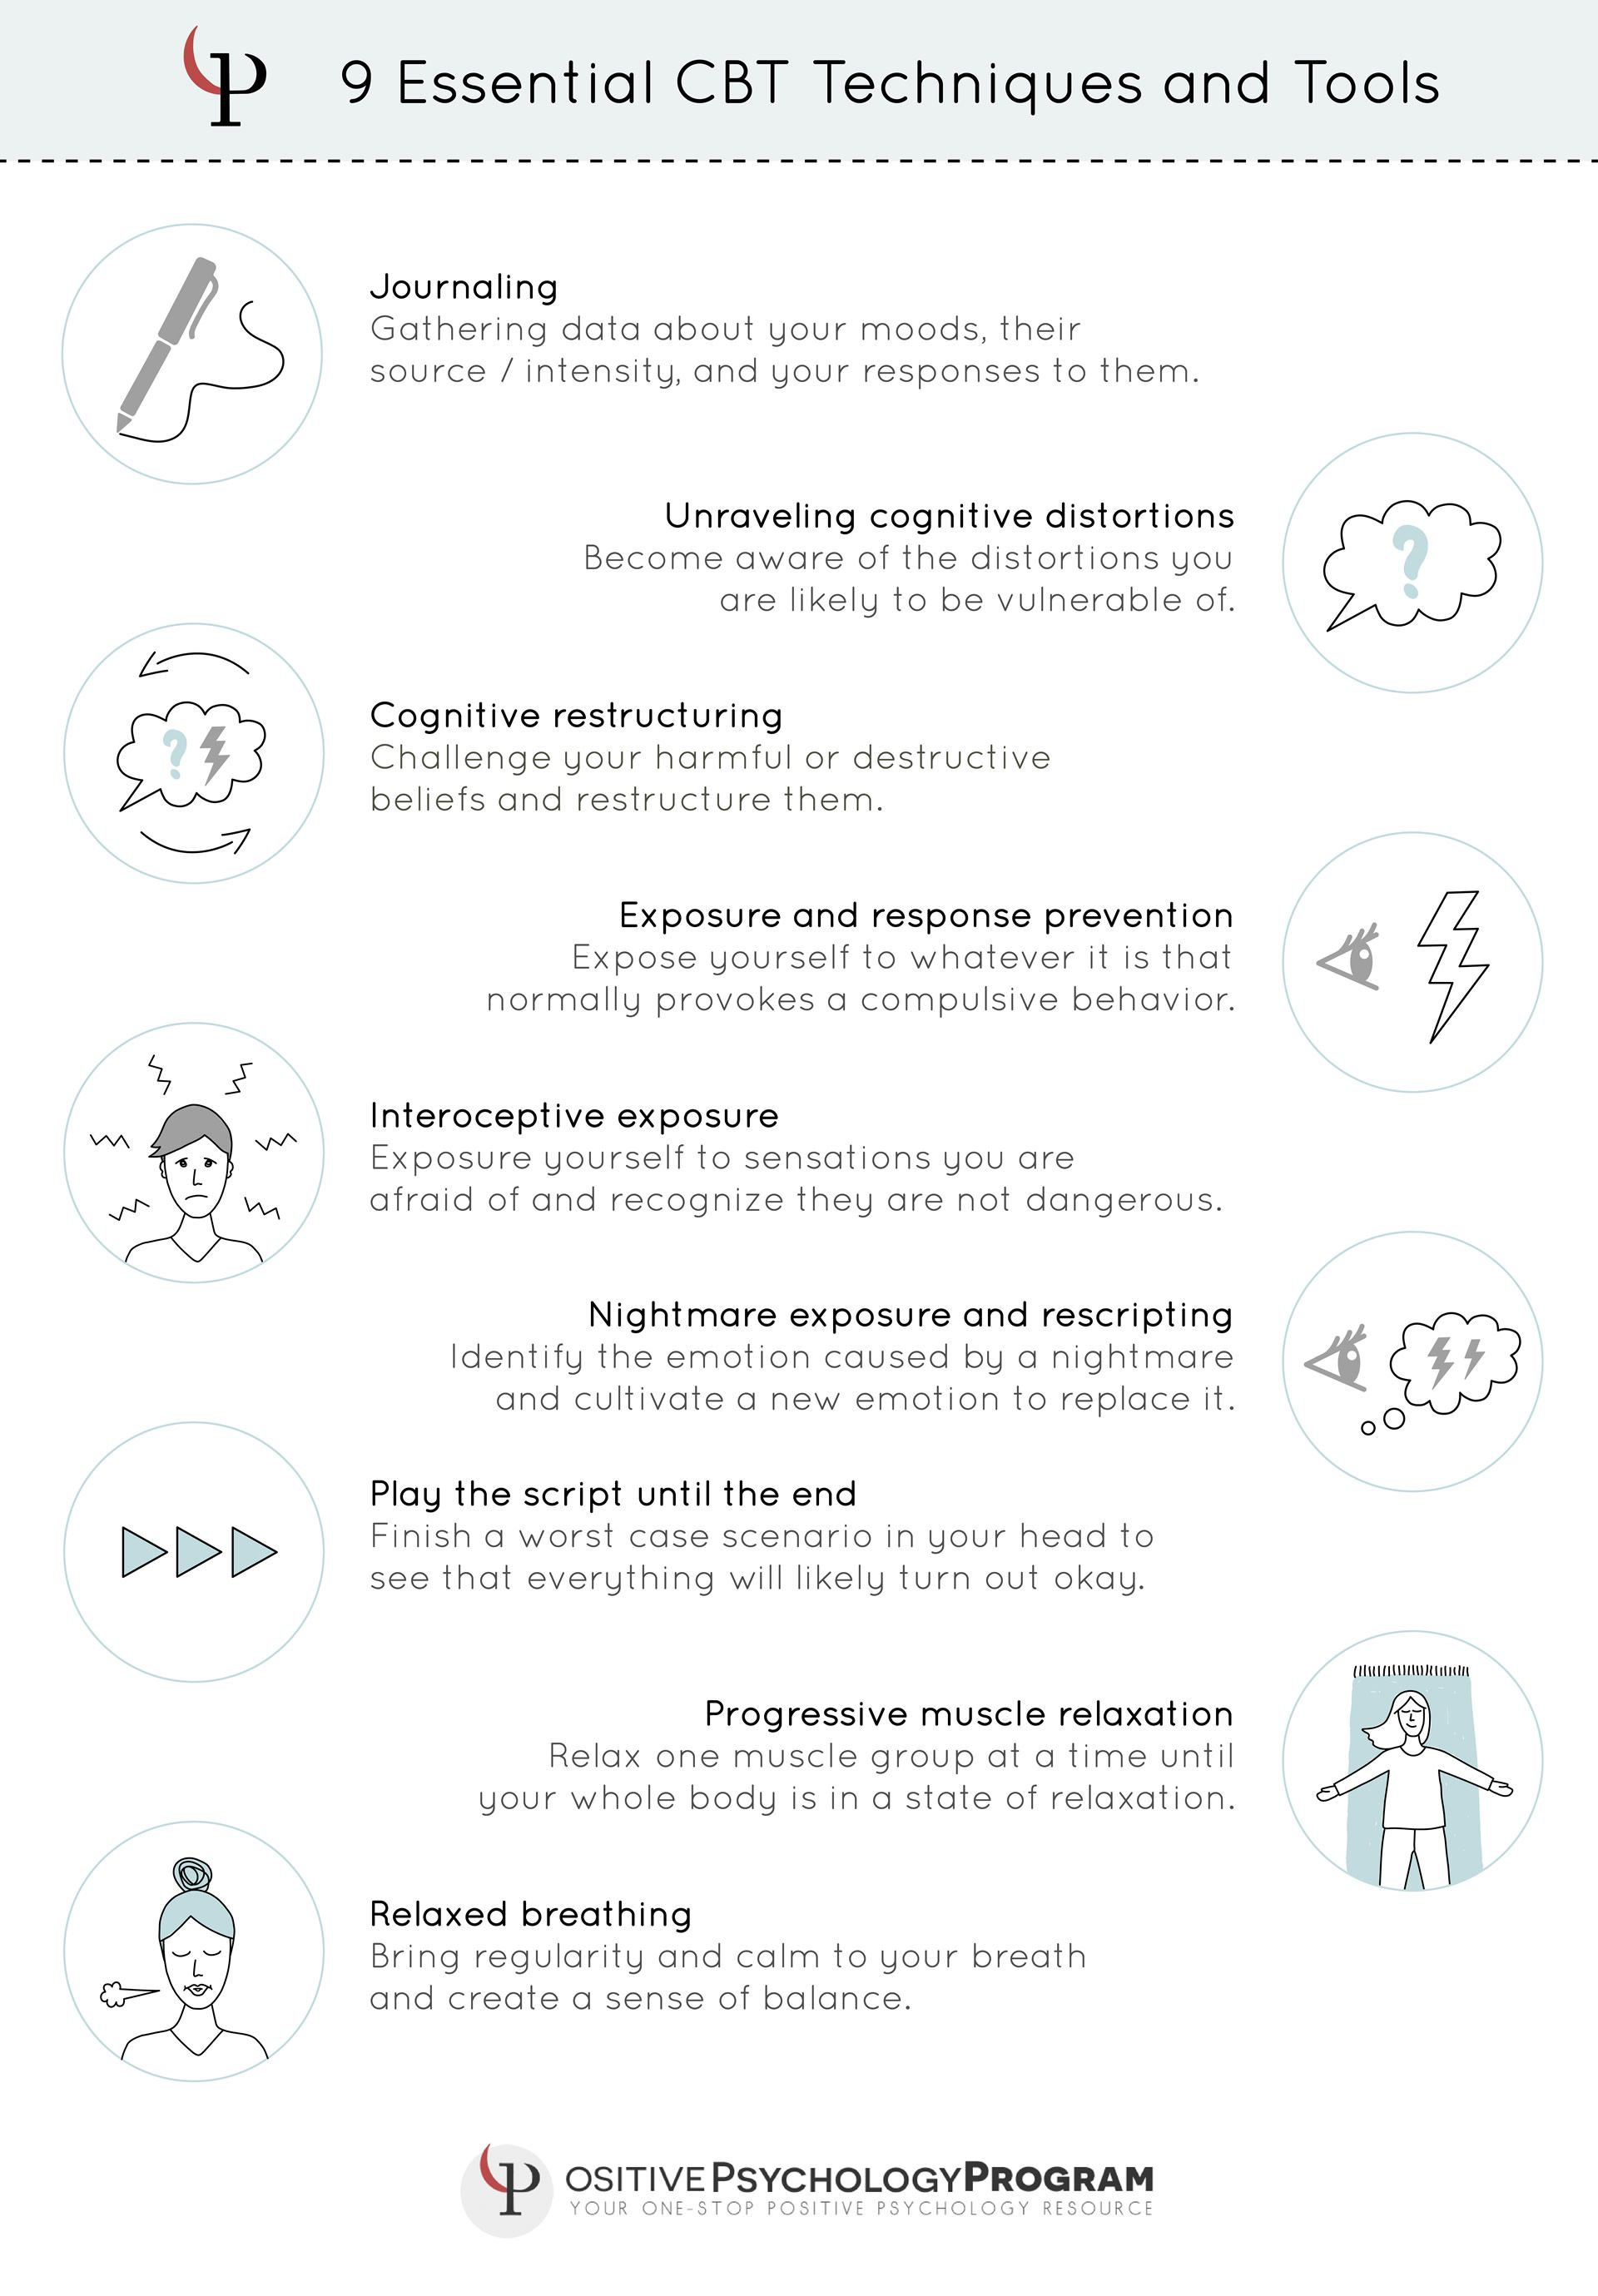 Cbt Techniques And Tools Infographic